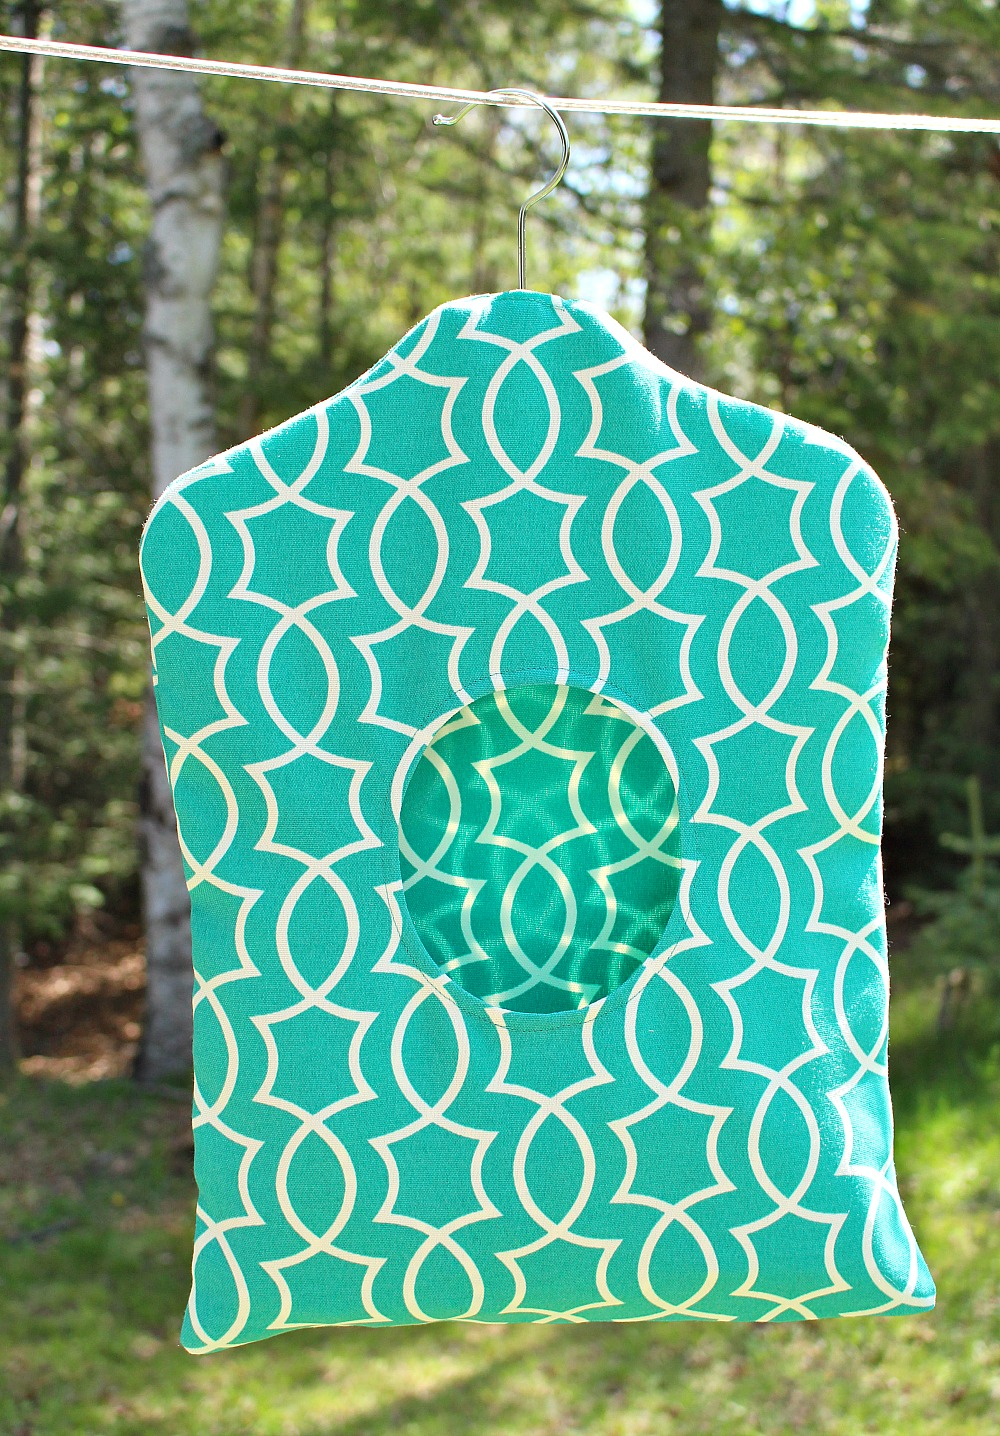 16 Creative Clothespin Bag Patterns And Ideas Guide